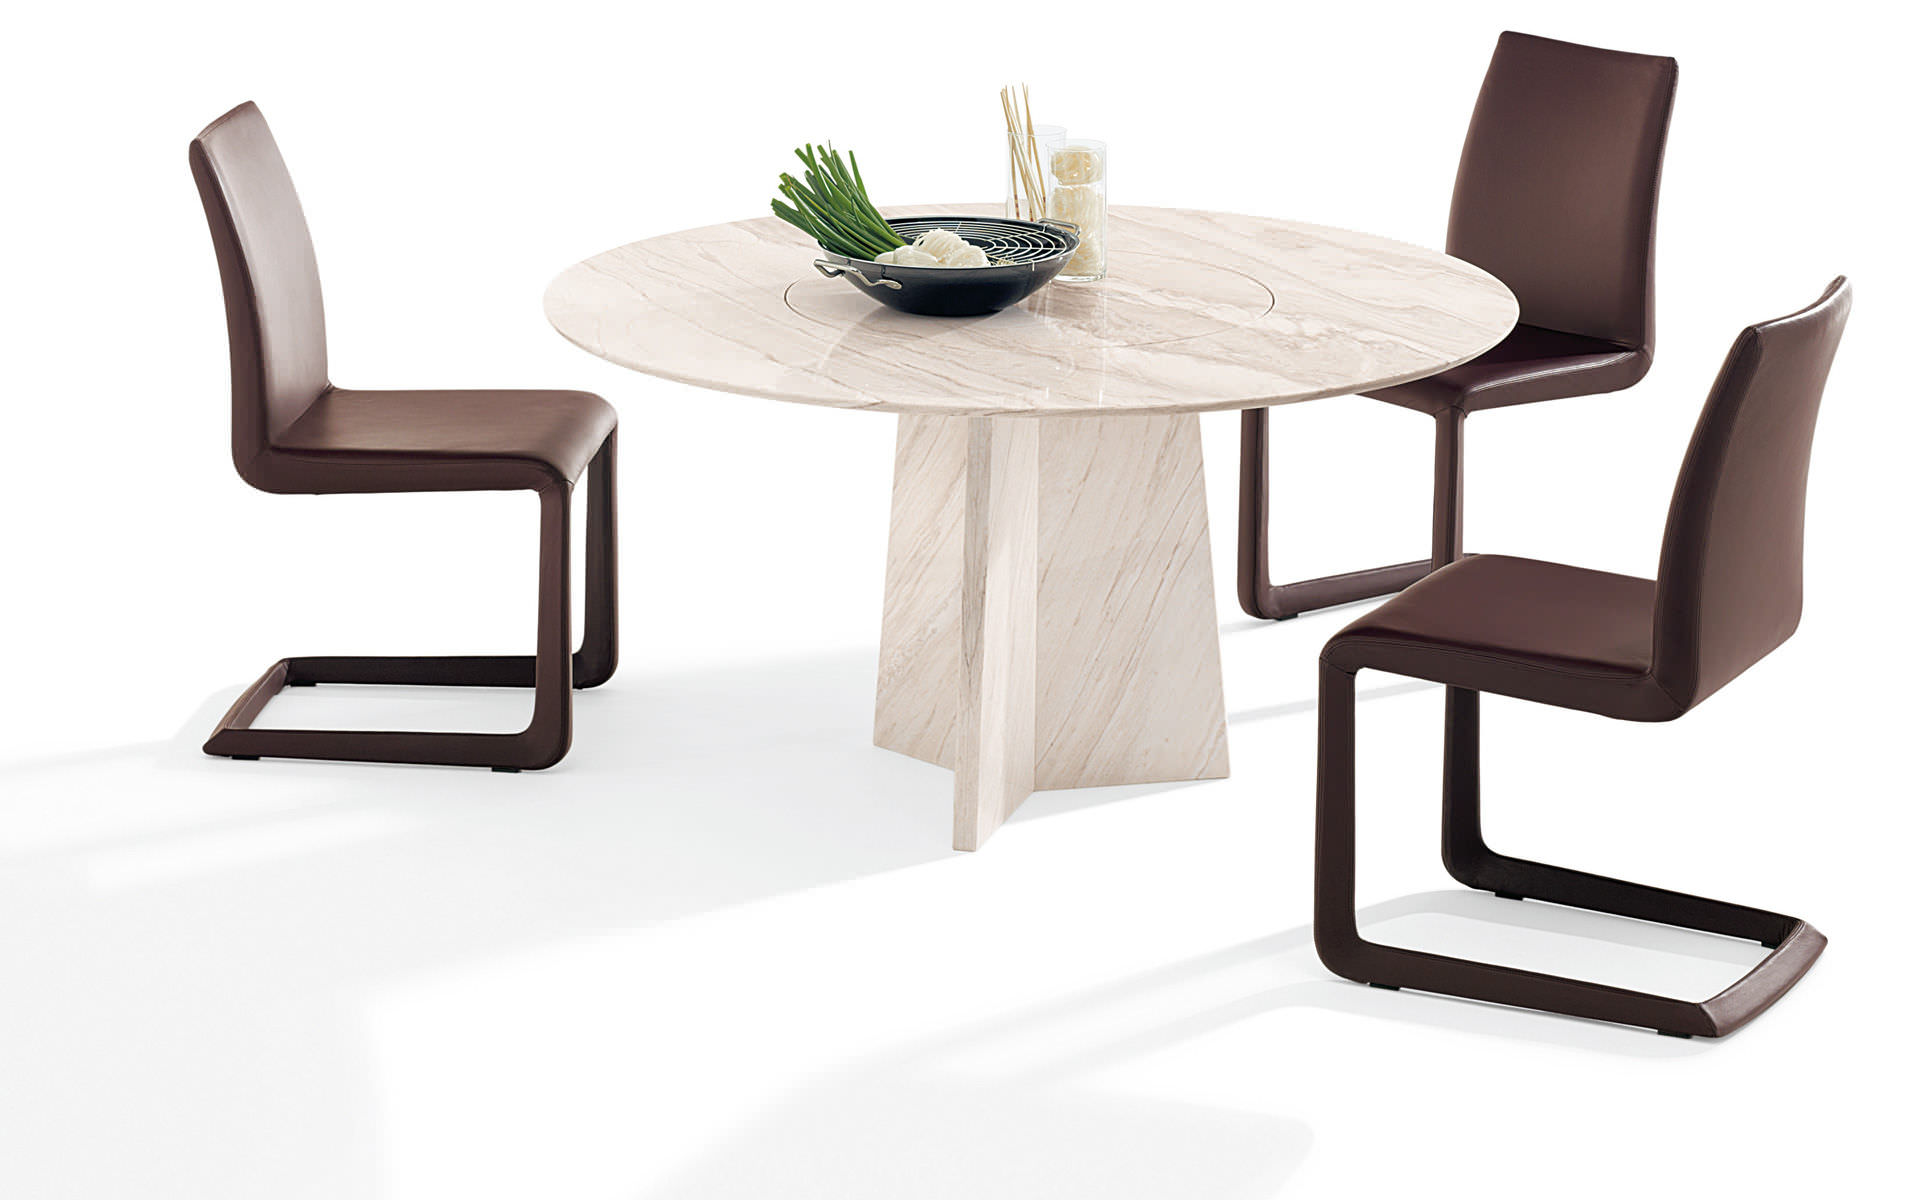 Merveilleux Contemporary Dining Table / Glass / Natural Stone / Round   1515 TADAO By  P.Draenert U0026 D.Joester